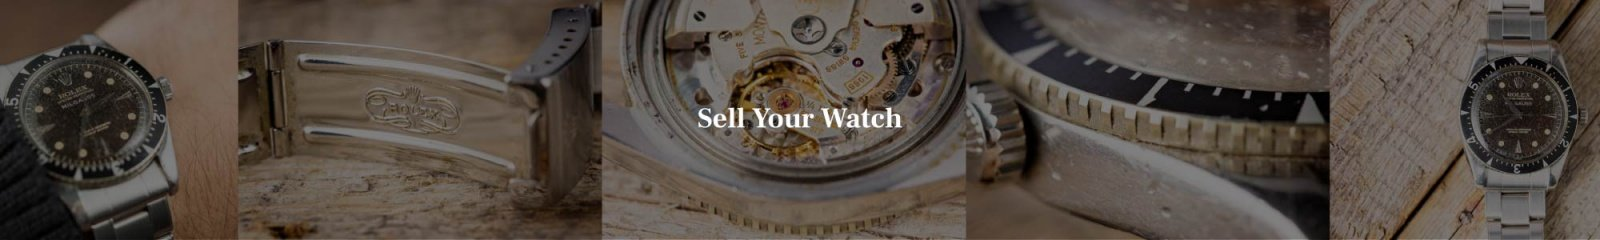 Sell us your vintage Rolex watch